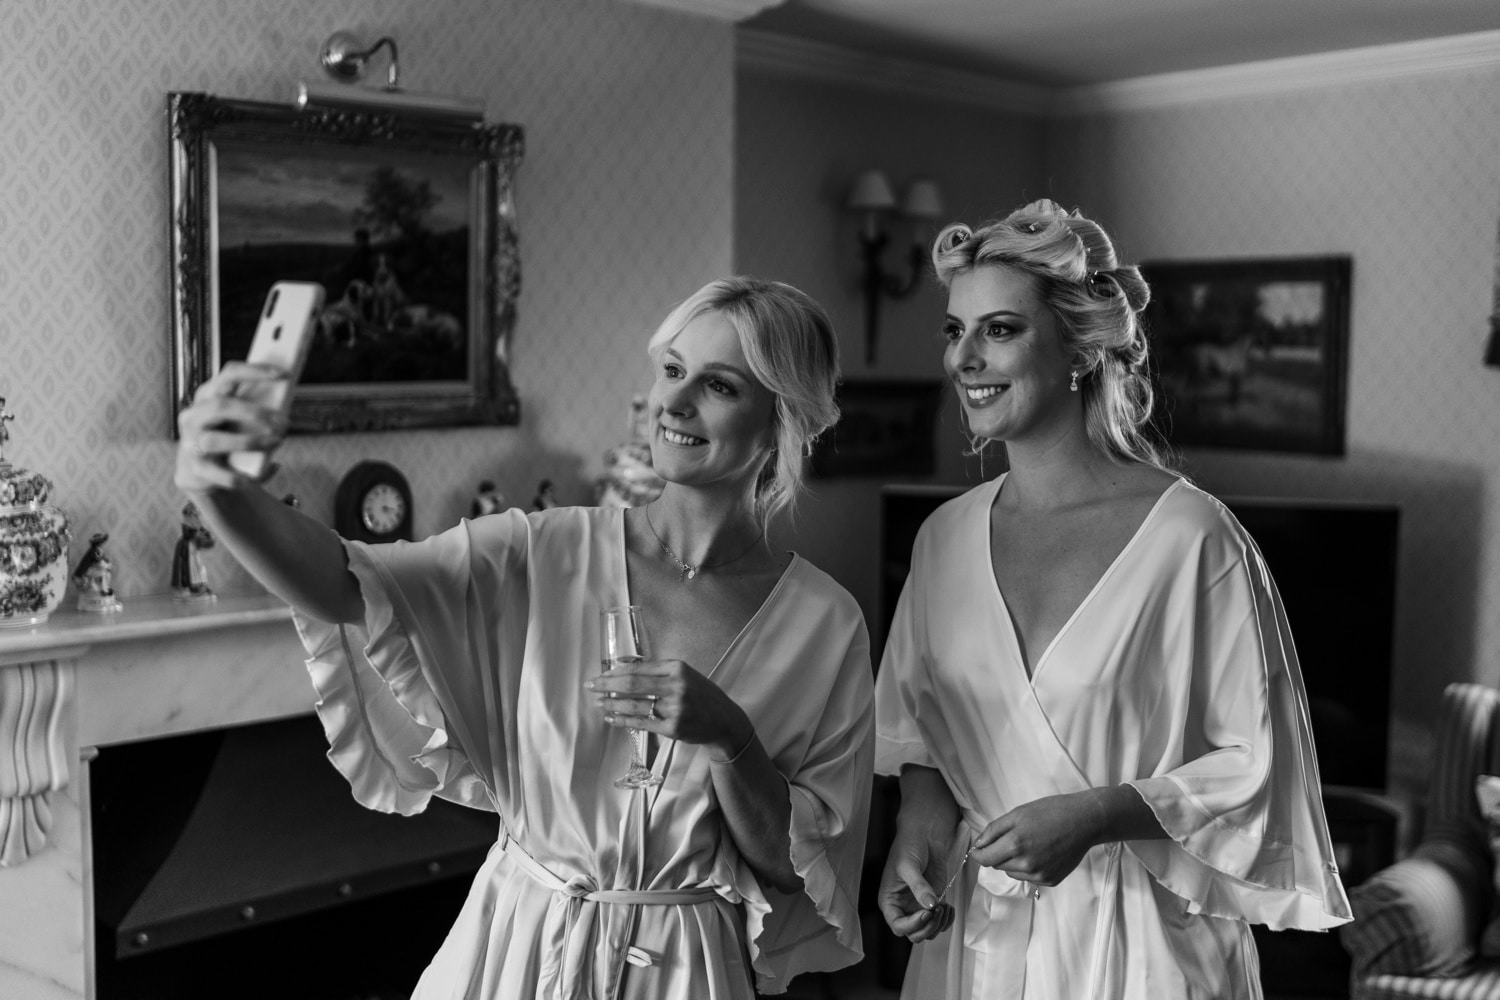 Bride and bridesmaid selfie in dressing gowns